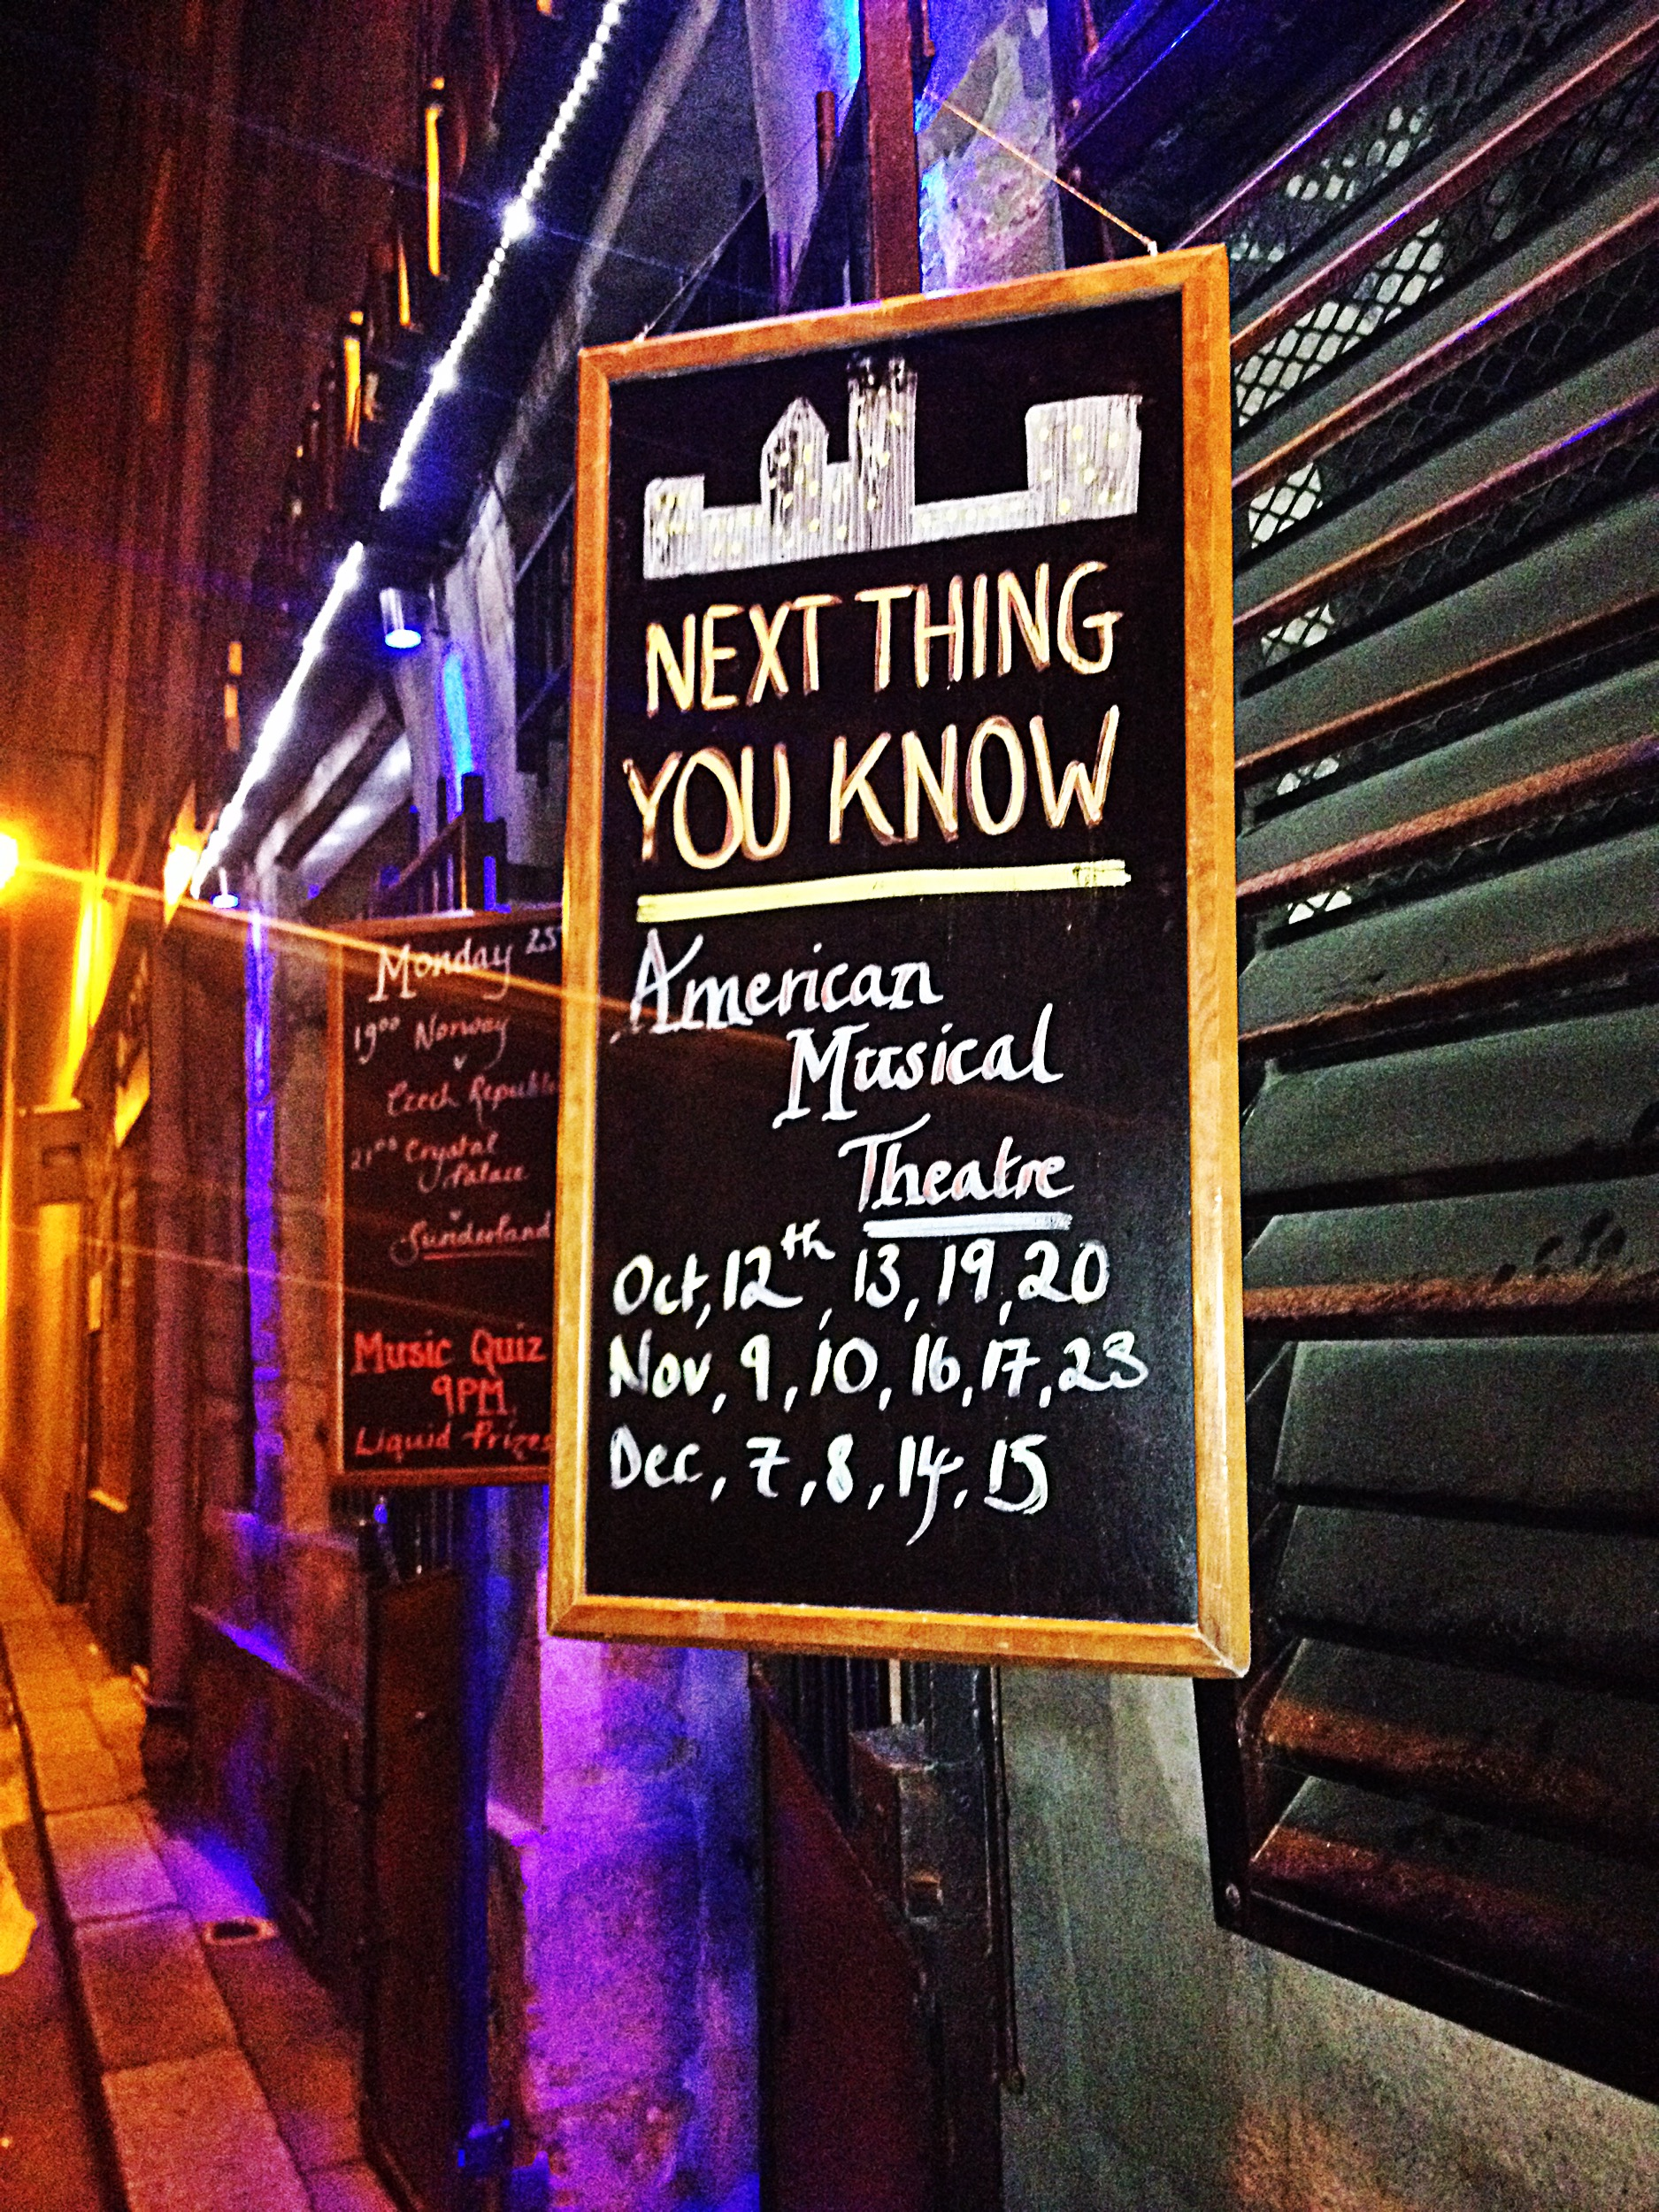 Next thing you know american musical theatre live paris american Pub Highlander Bar écossais rue de Nevers 6e photo by United states of paris usofparis